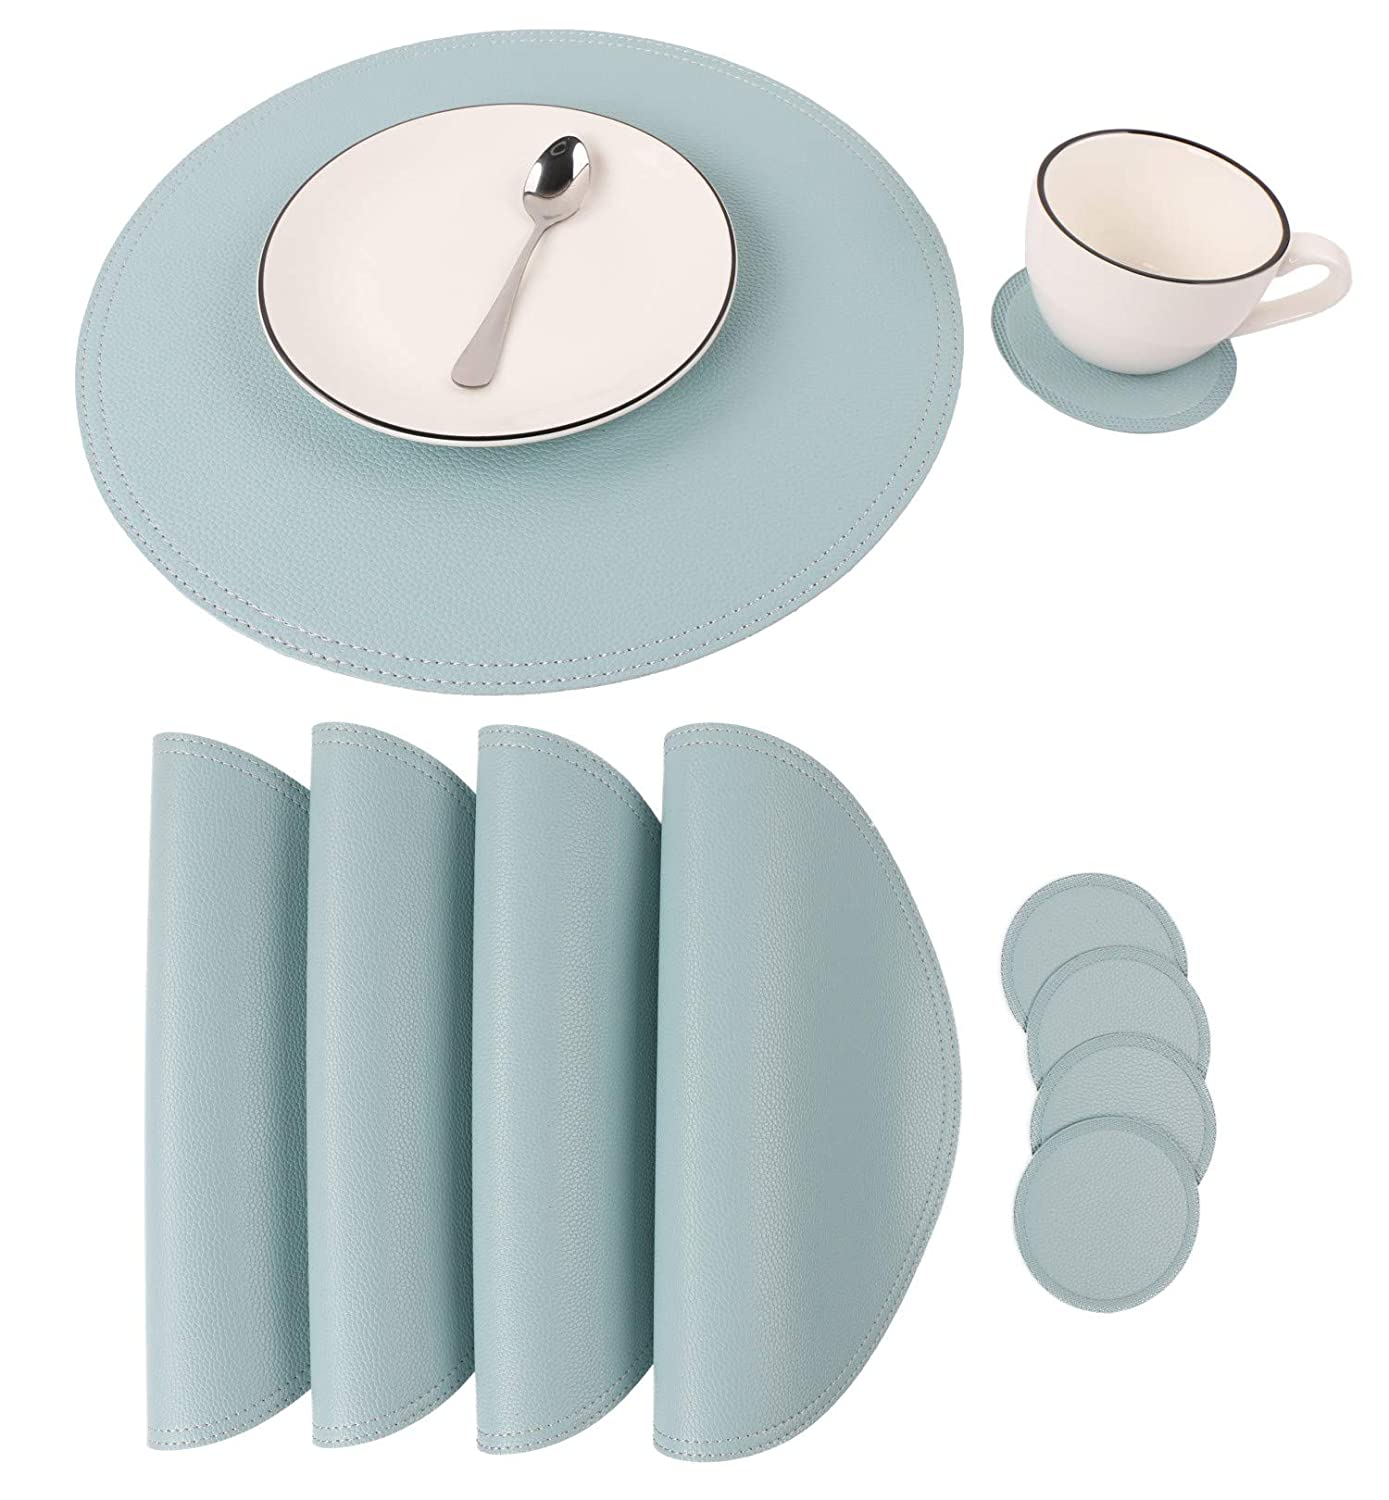 Jovono Faux Leather Round Placemats and Coasters, Coffee Mats Kitchen Table Mats, Waterproof, Easy to Clean for Kitchen Dining Round Table